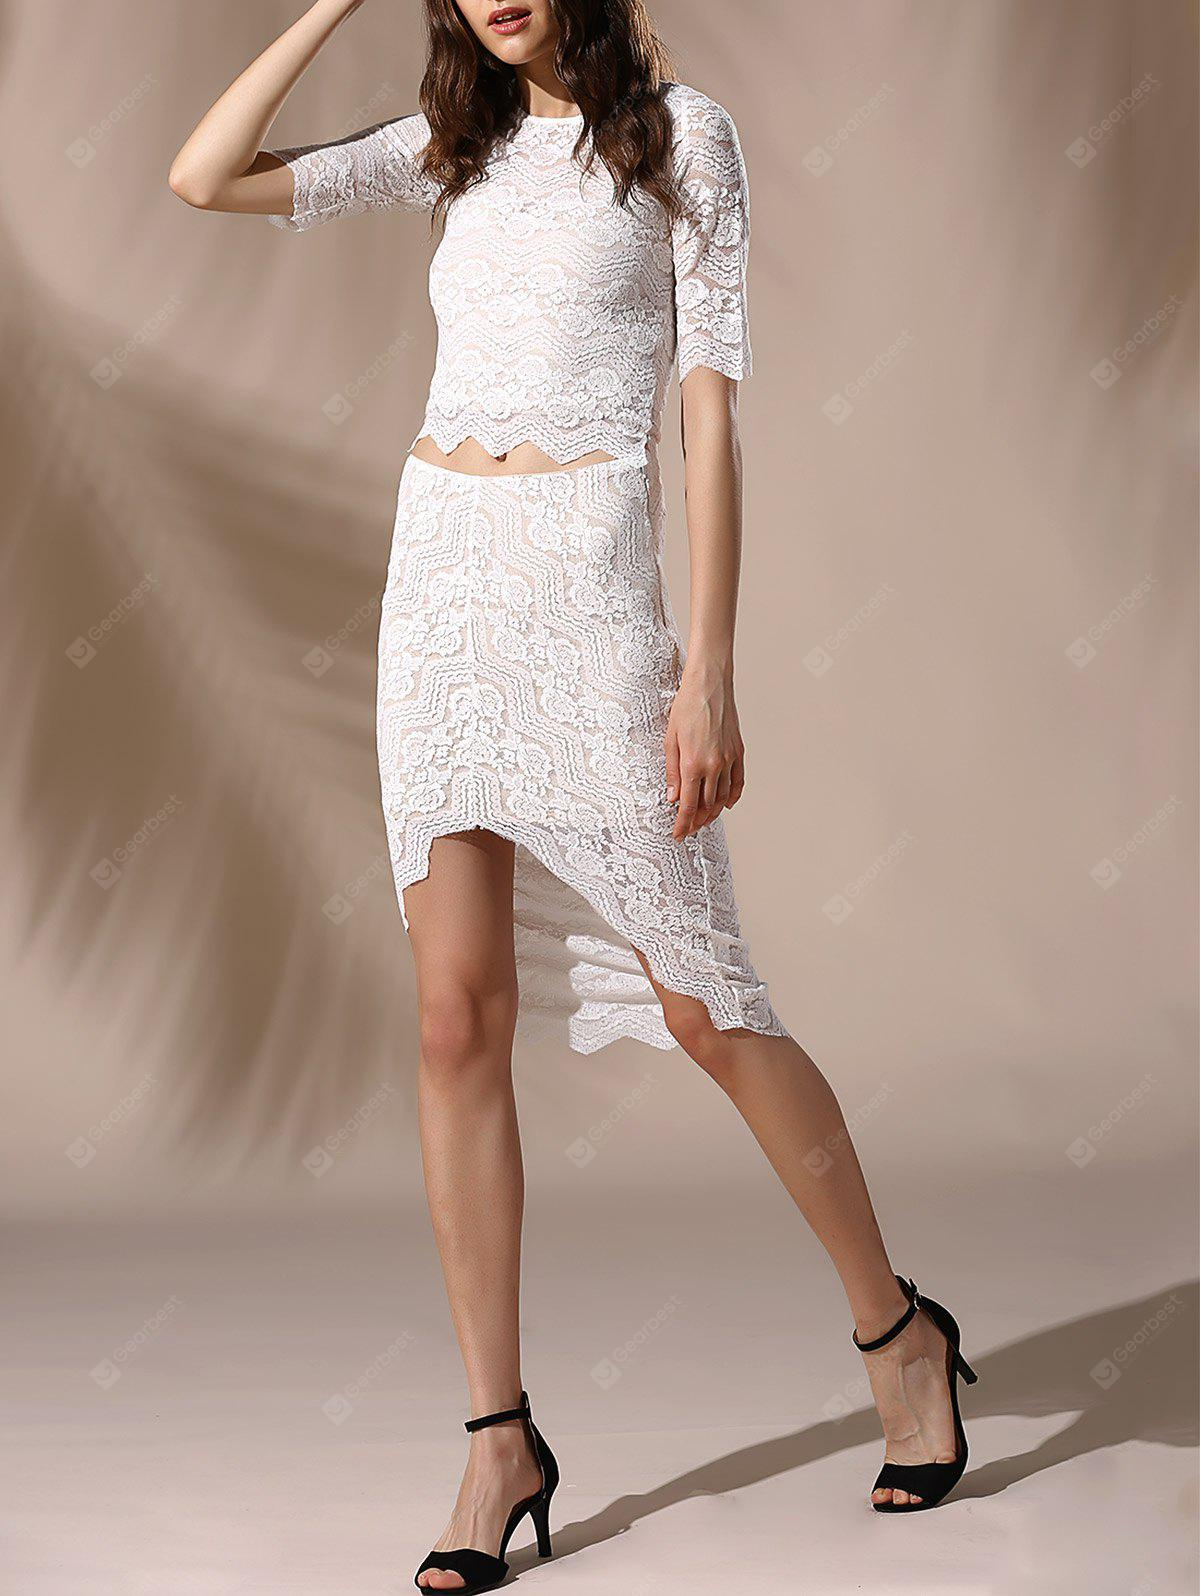 4b552ebcadc Buy Chic Round Neck Skinny Crop Top + Asymmetrical Lace Skirt Women's  Twinset ...